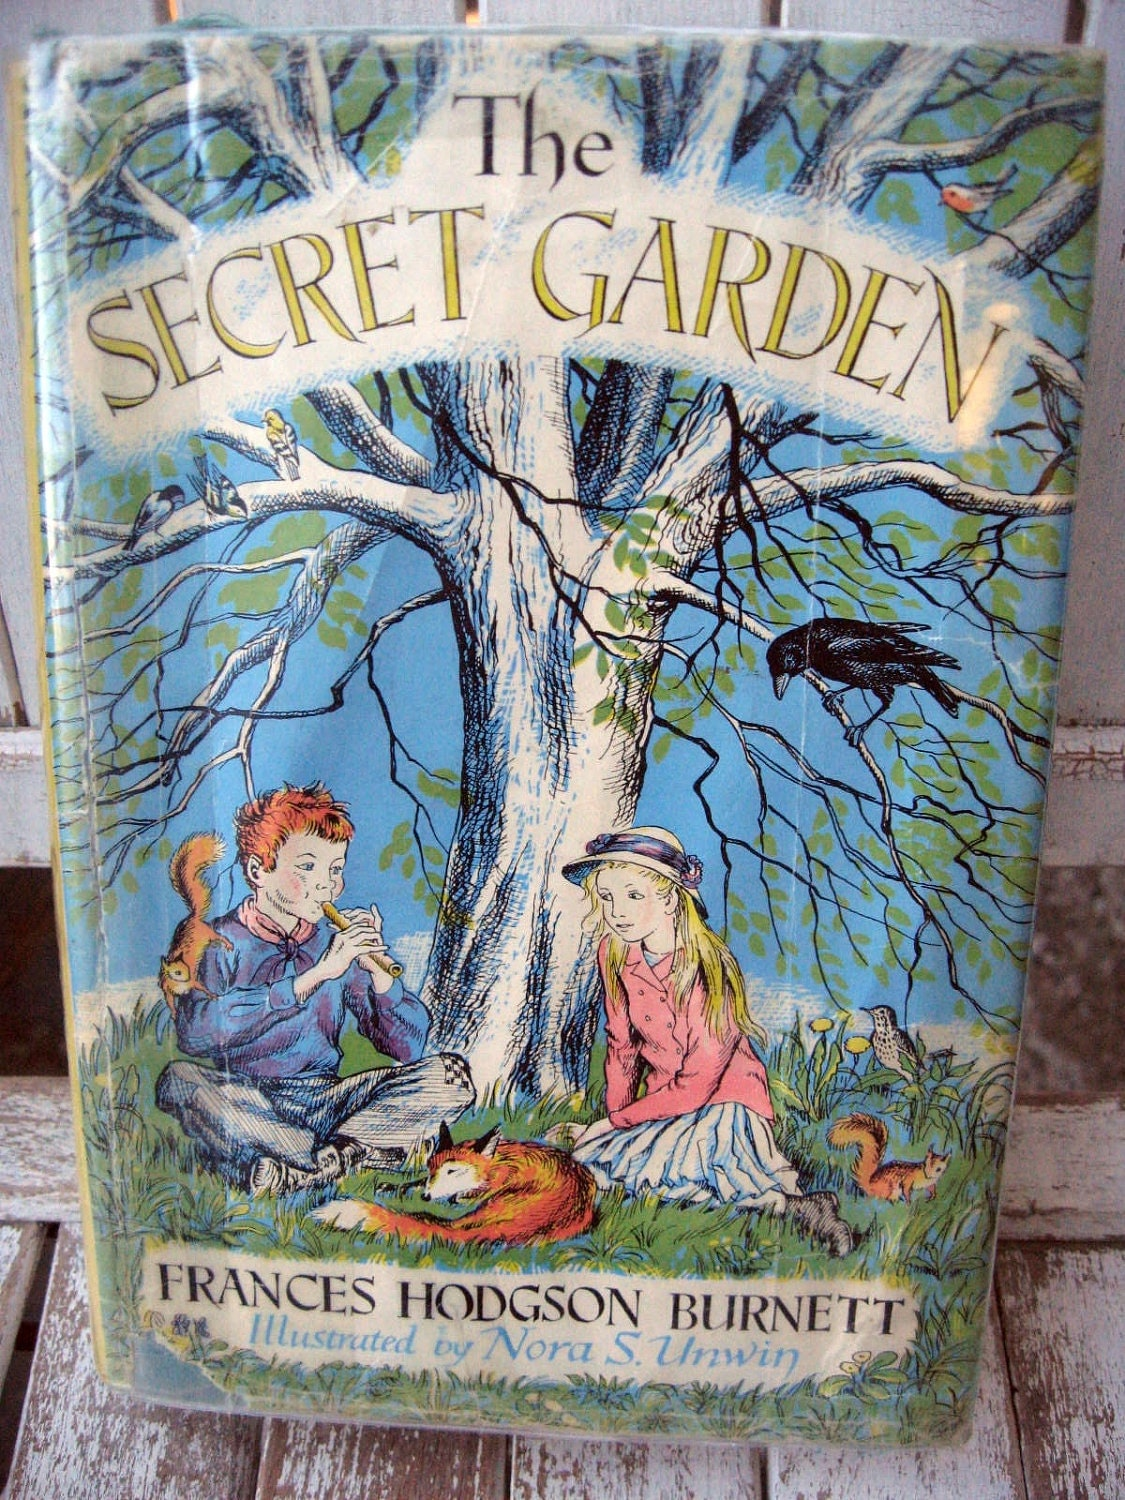 Children S Book Blue Cover : Vintage children s book classic the secret garden by